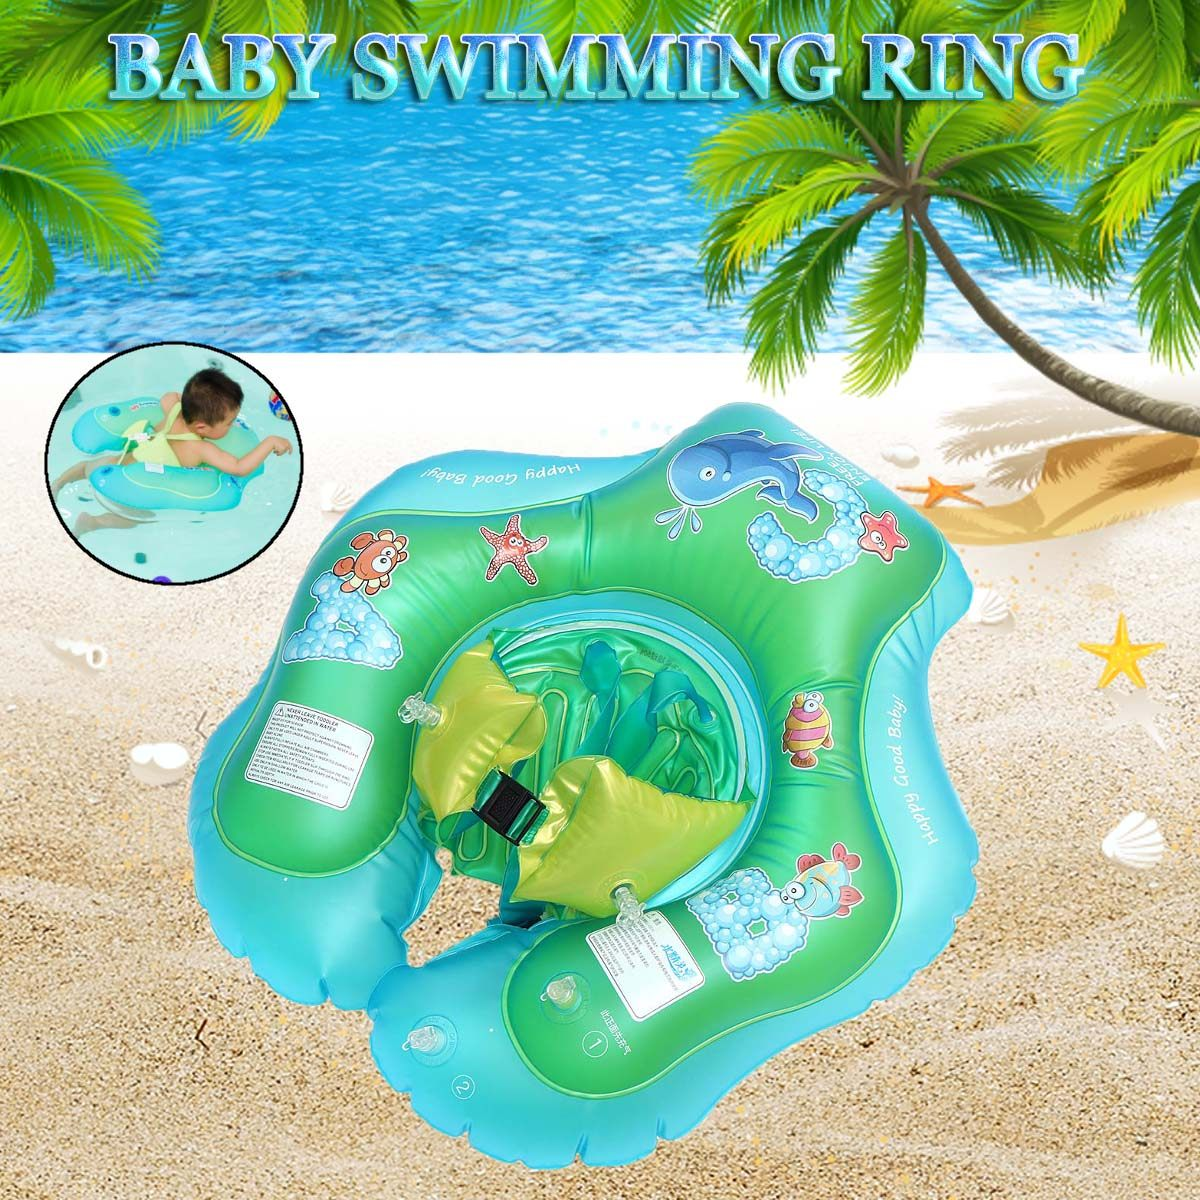 Inflatable Baby Swim Float Ring Flat Swimming Trainer Safety Neck Float Pool Water Fun Toy Kids Circle Safety Bathing Pool